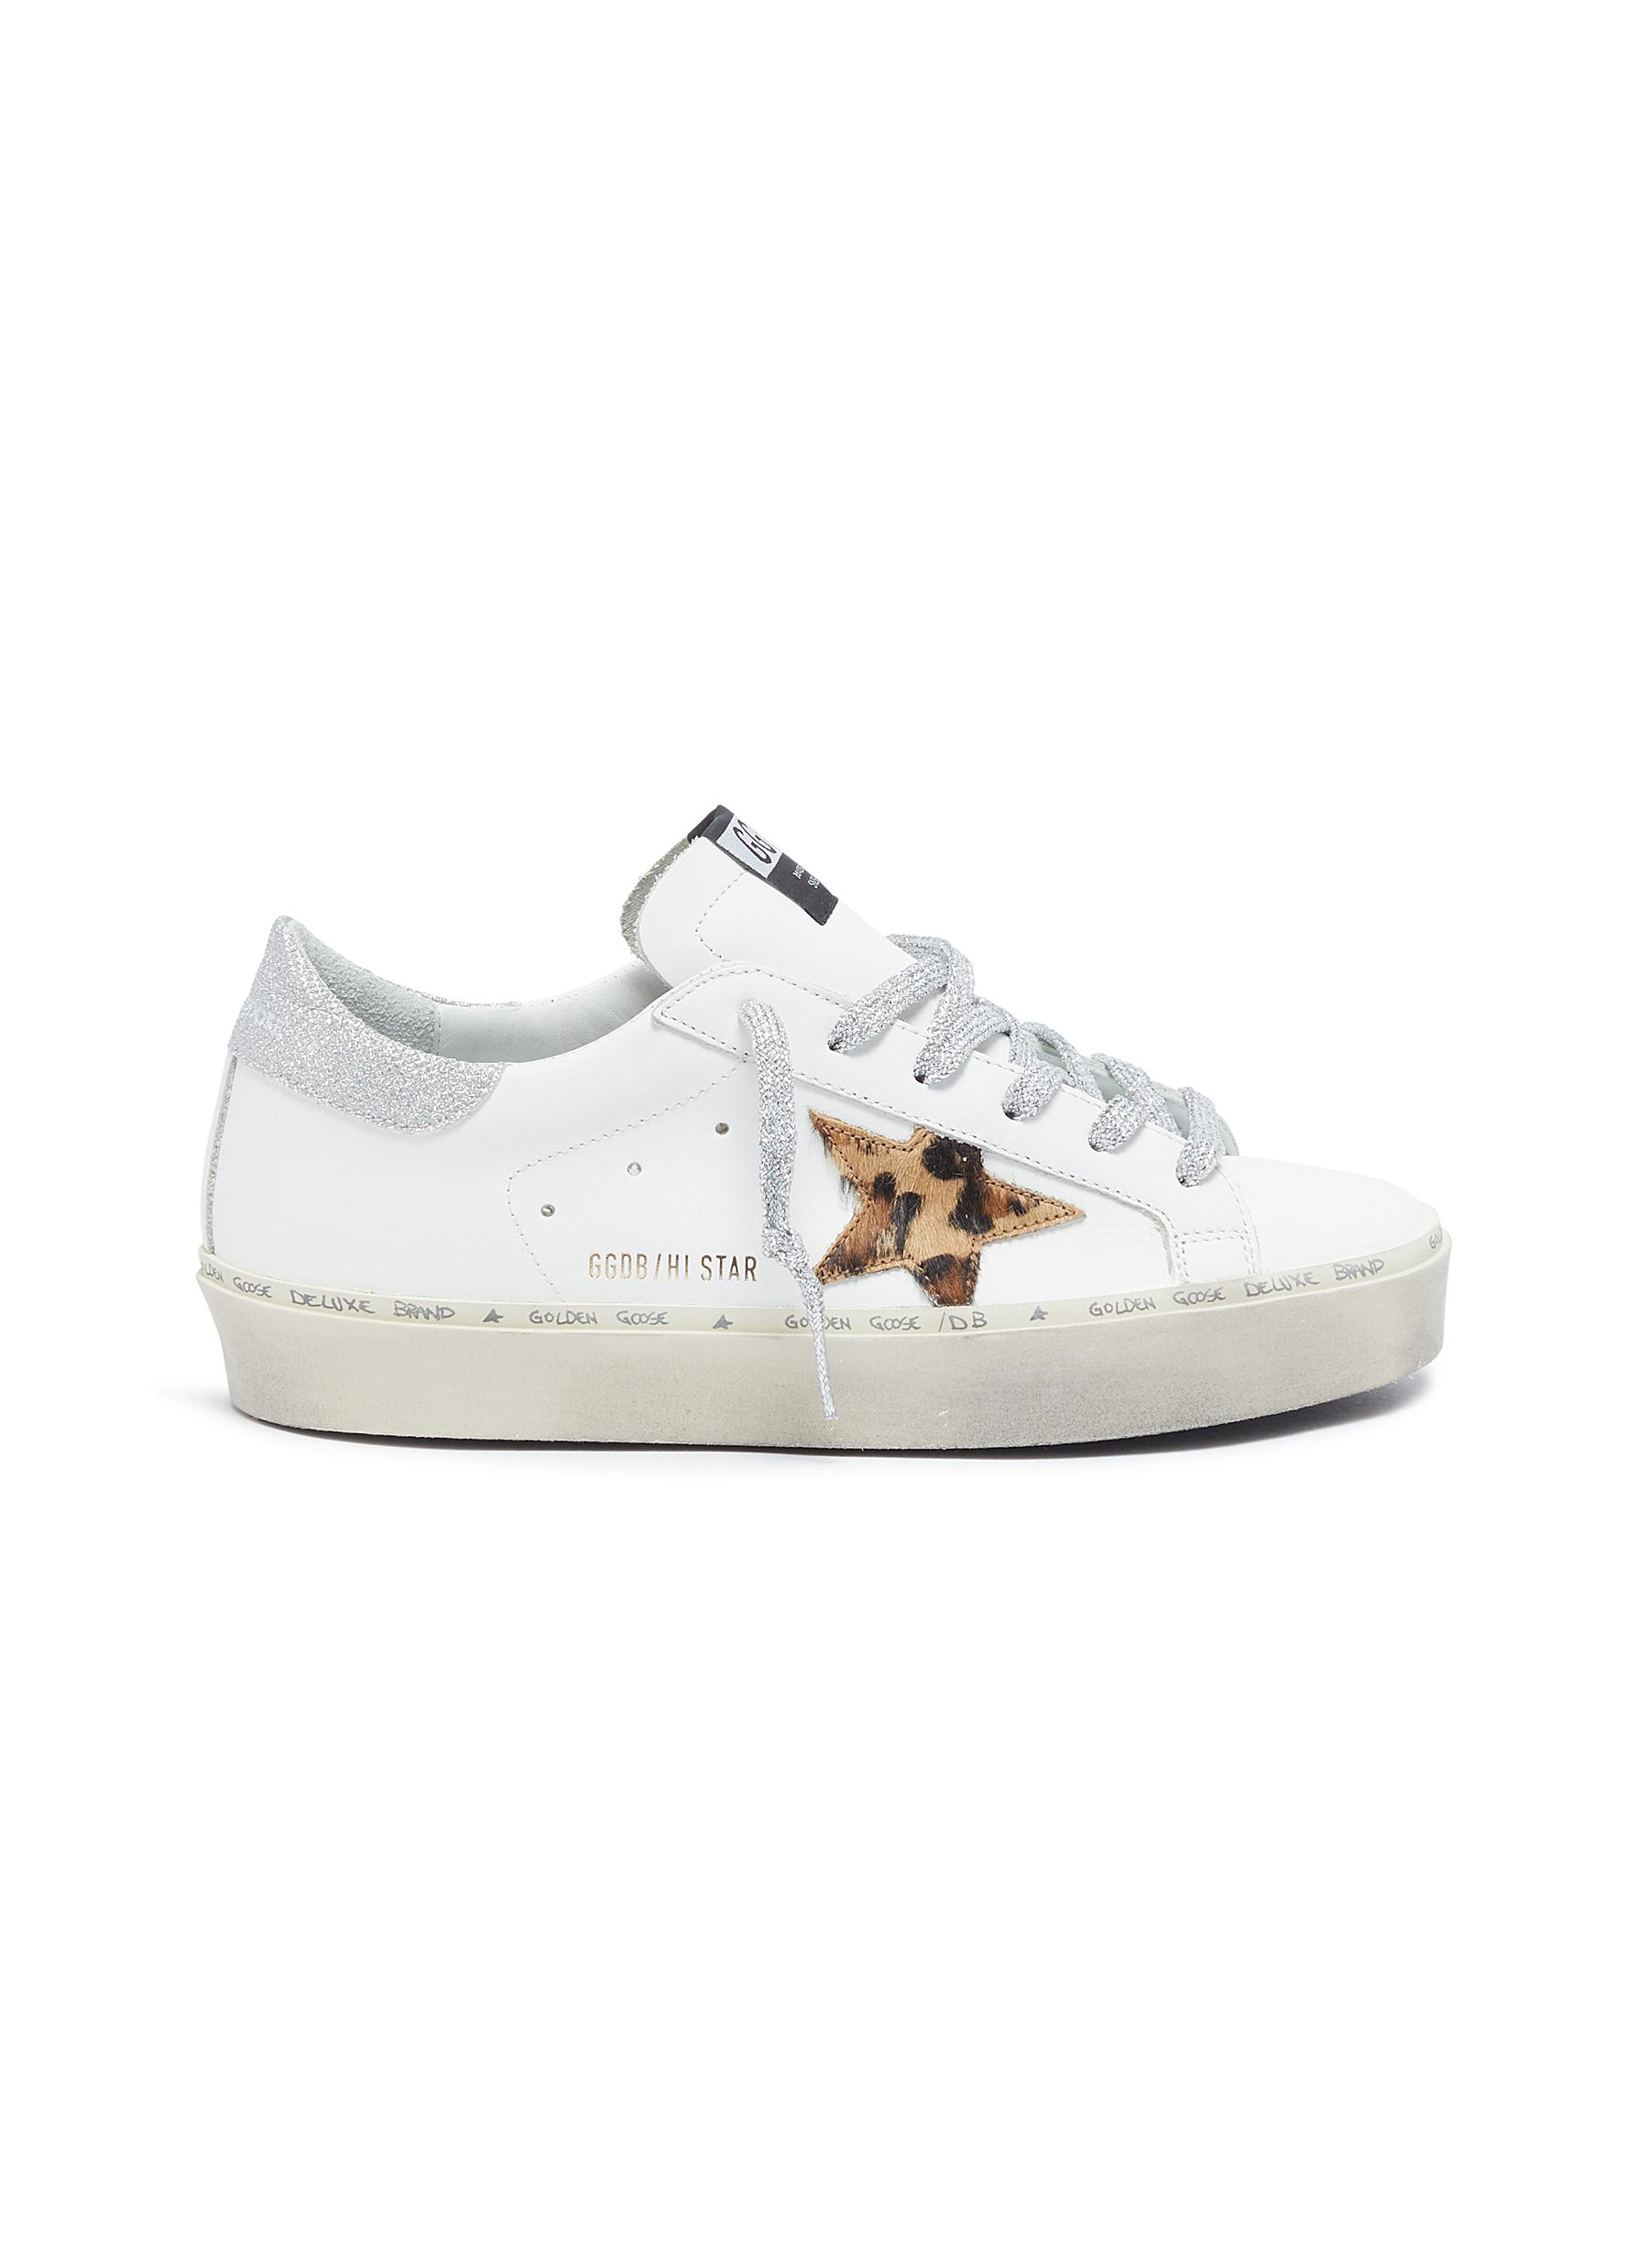 Golden Goose Sneakers Hi Star leopard star patch glitter tab leather sneakers